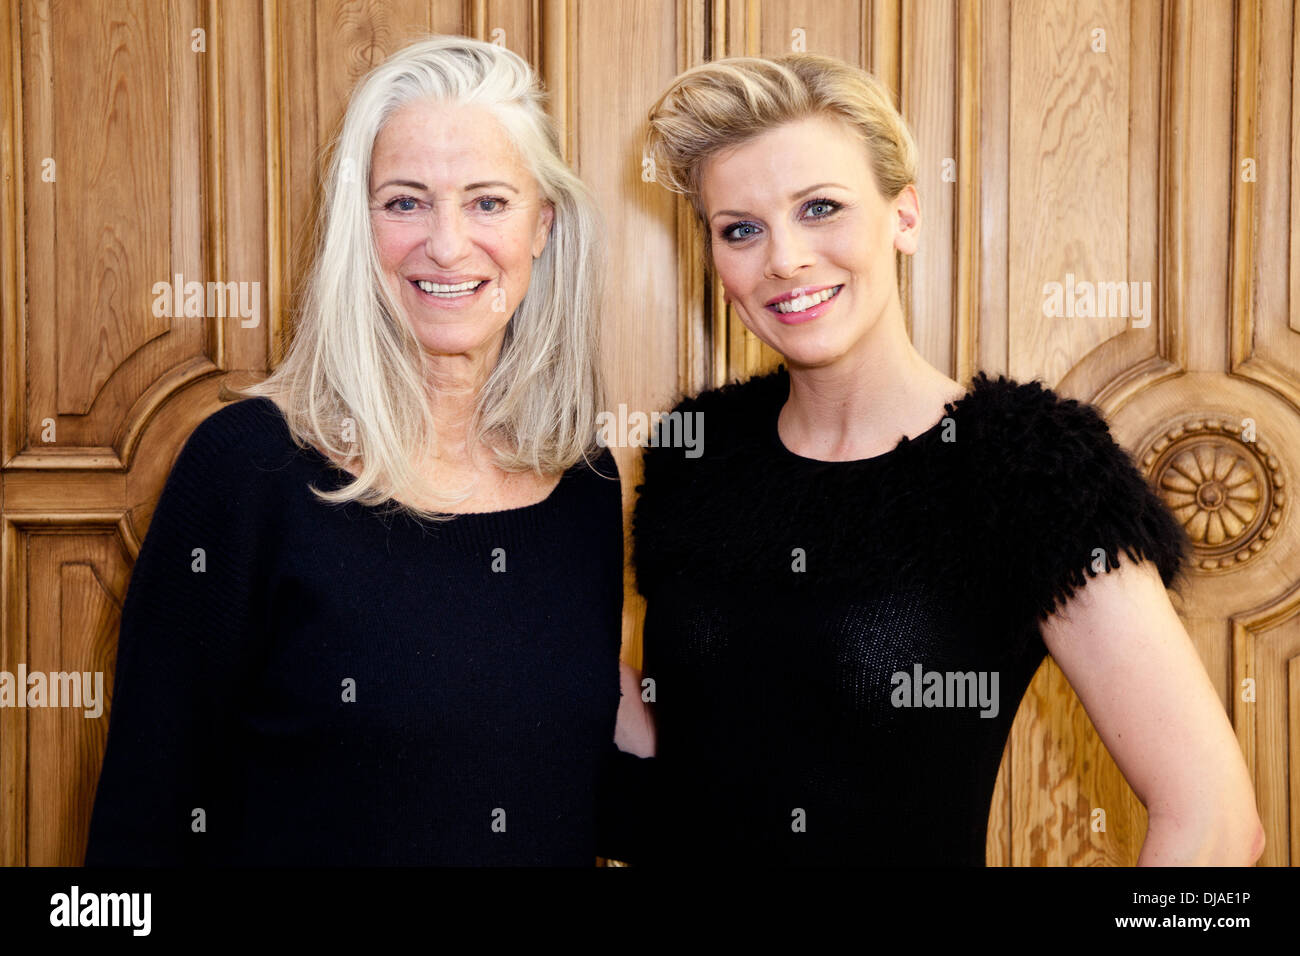 iris von arnim and eva habermann fitting for the charity fashion show stock photo royalty free. Black Bedroom Furniture Sets. Home Design Ideas